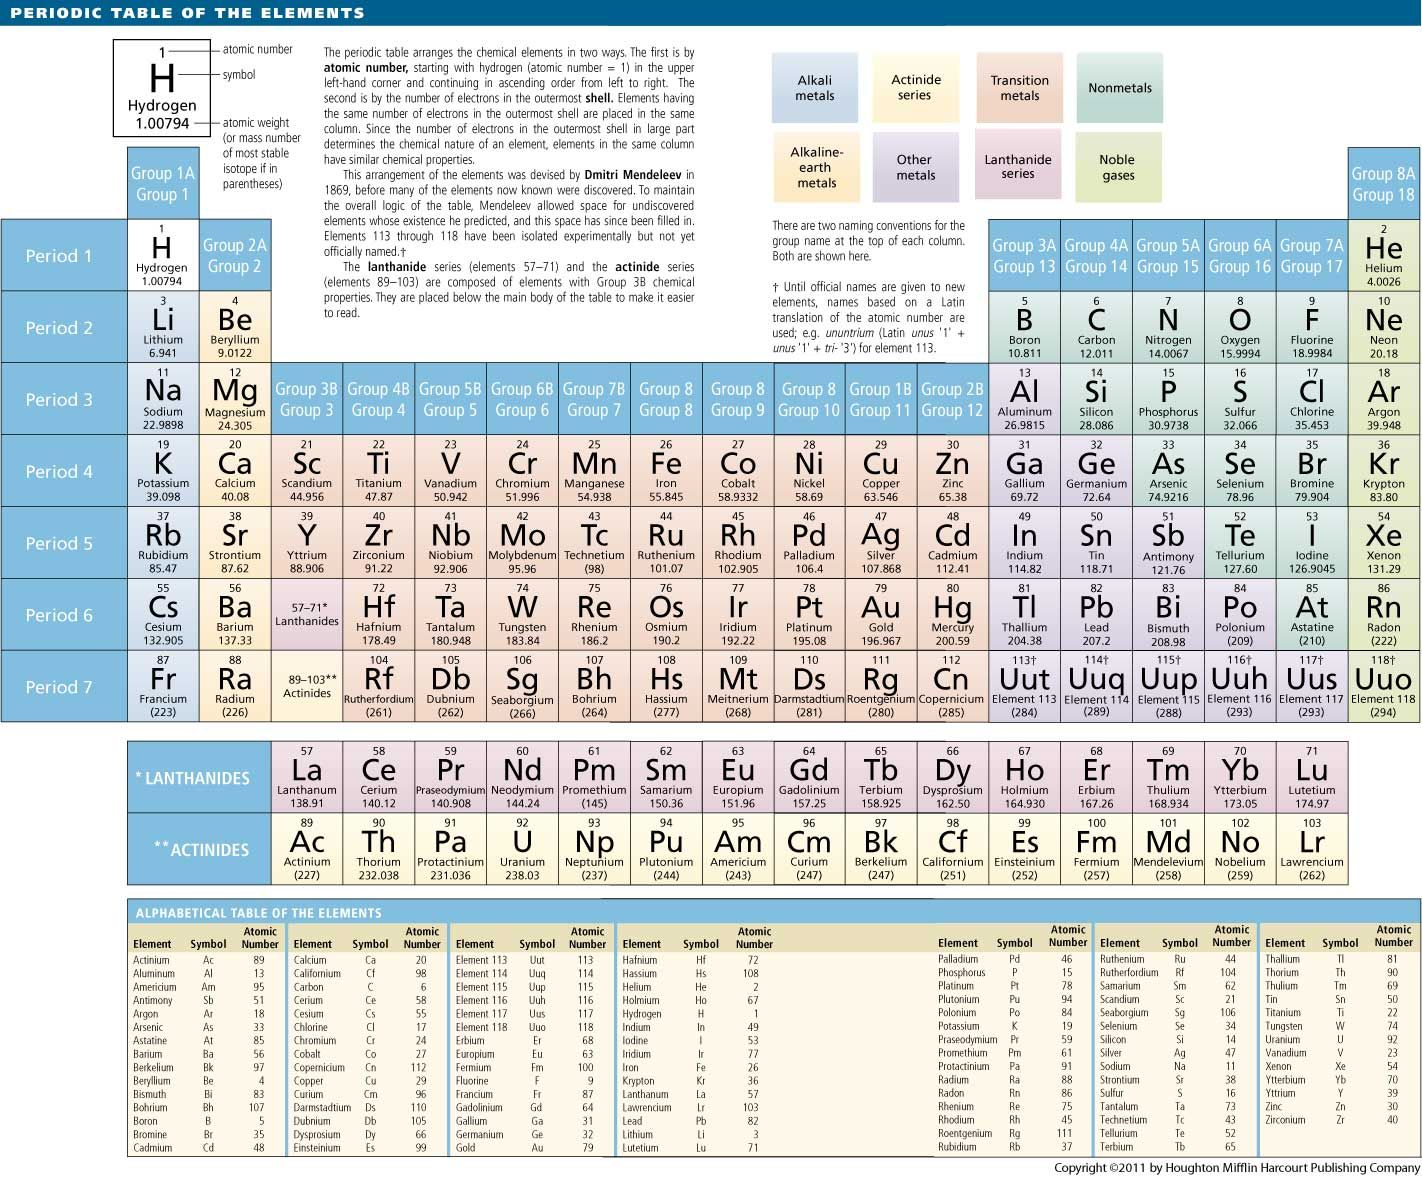 Periodic table of elements definition remoultai pinterest periodic table of elements definition chemistry mottcountle urtaz Gallery